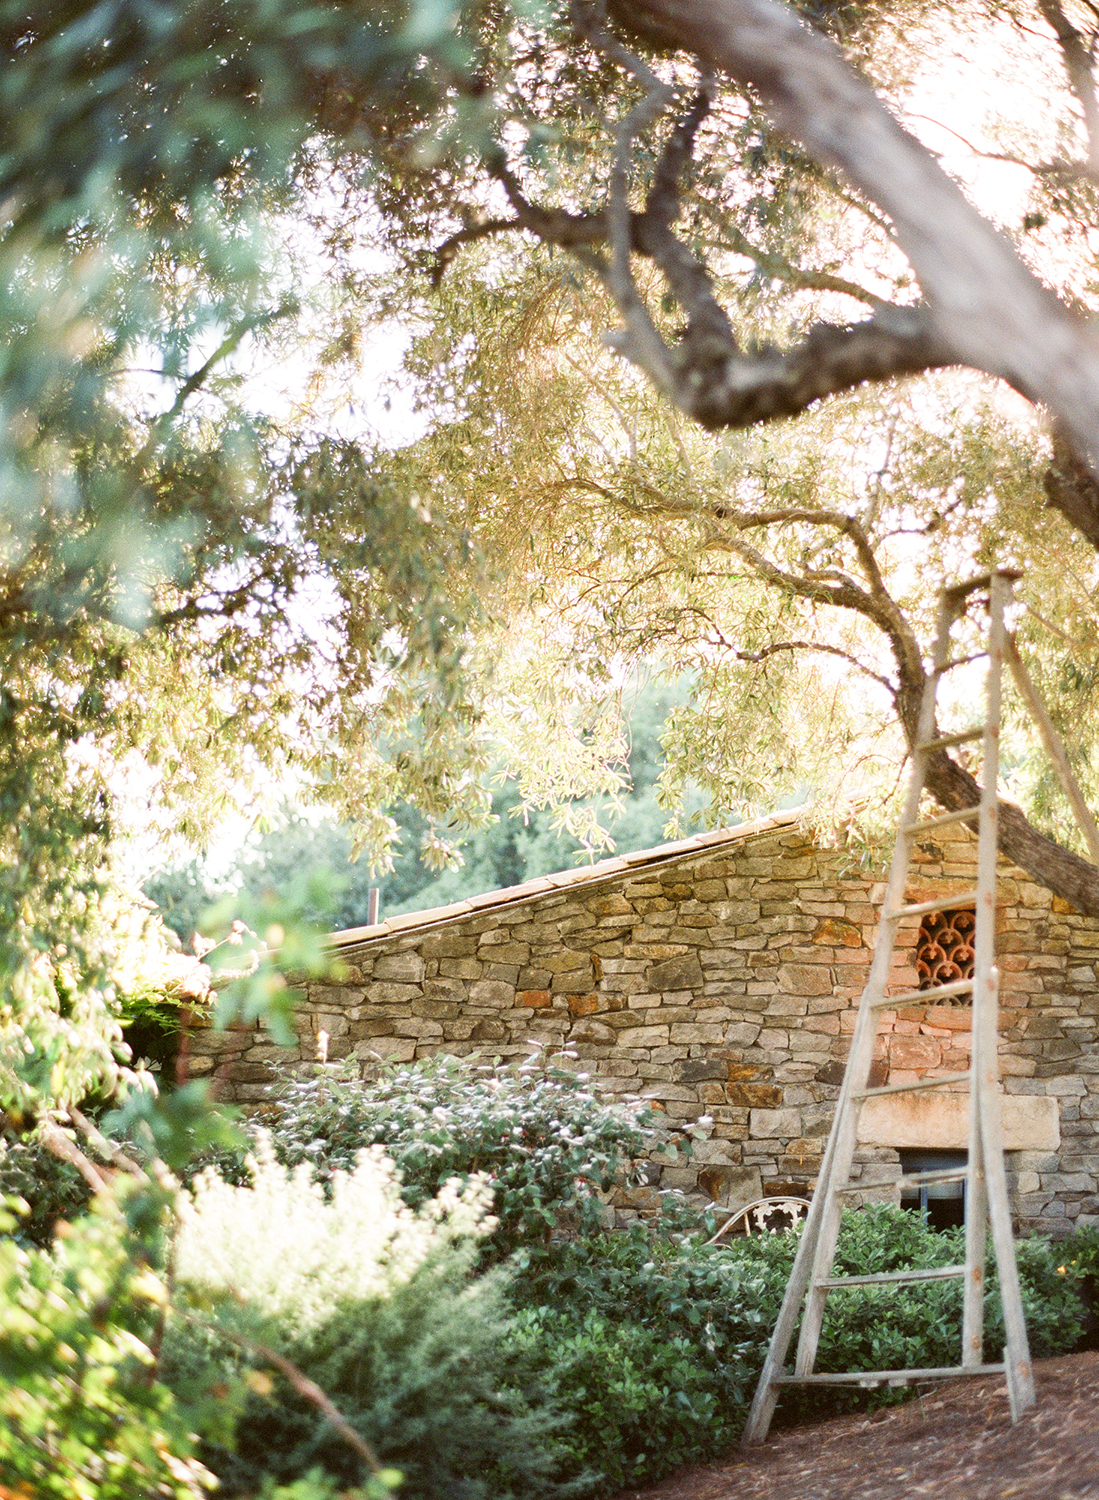 A ladder bathed in warm afternoon sunlight adds a charming rustic accent to the venue; photo by Sylvie Gil